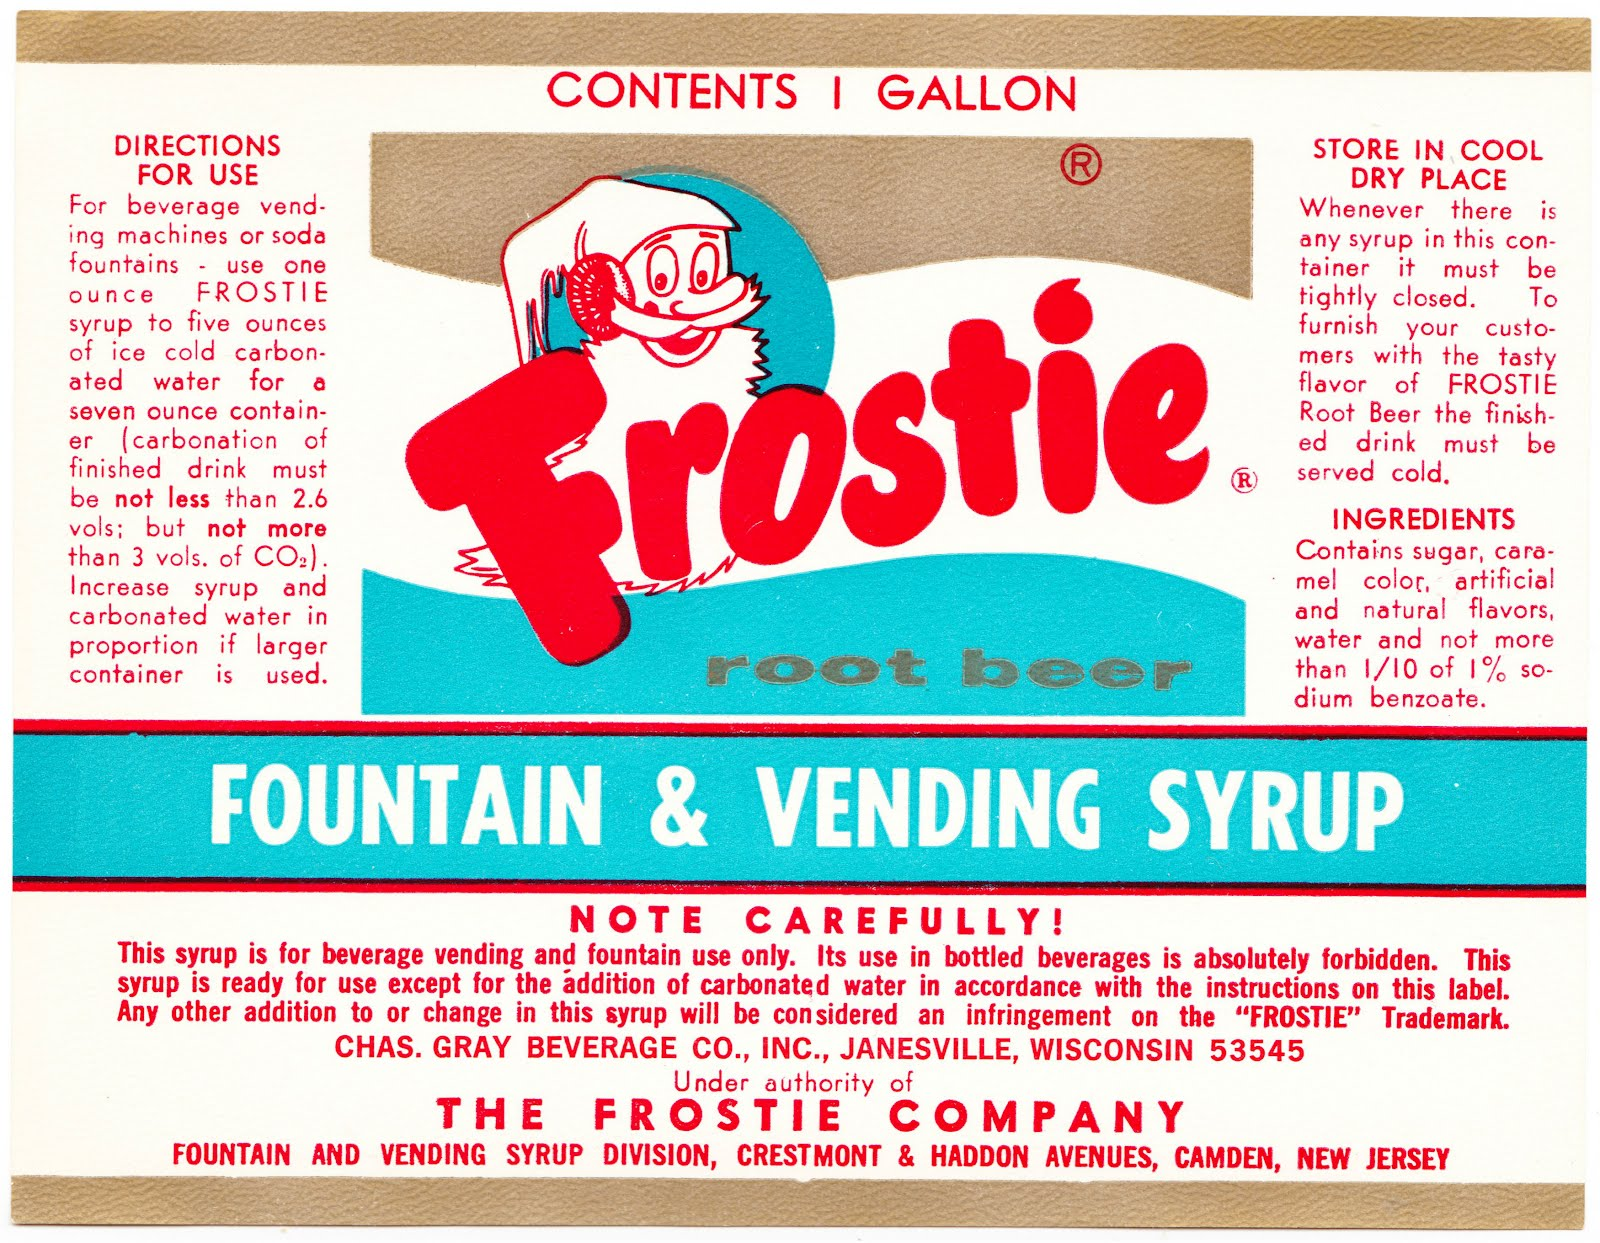 Papergreat A Label For Frostie Root Beer A Jailhouse Born Beverage